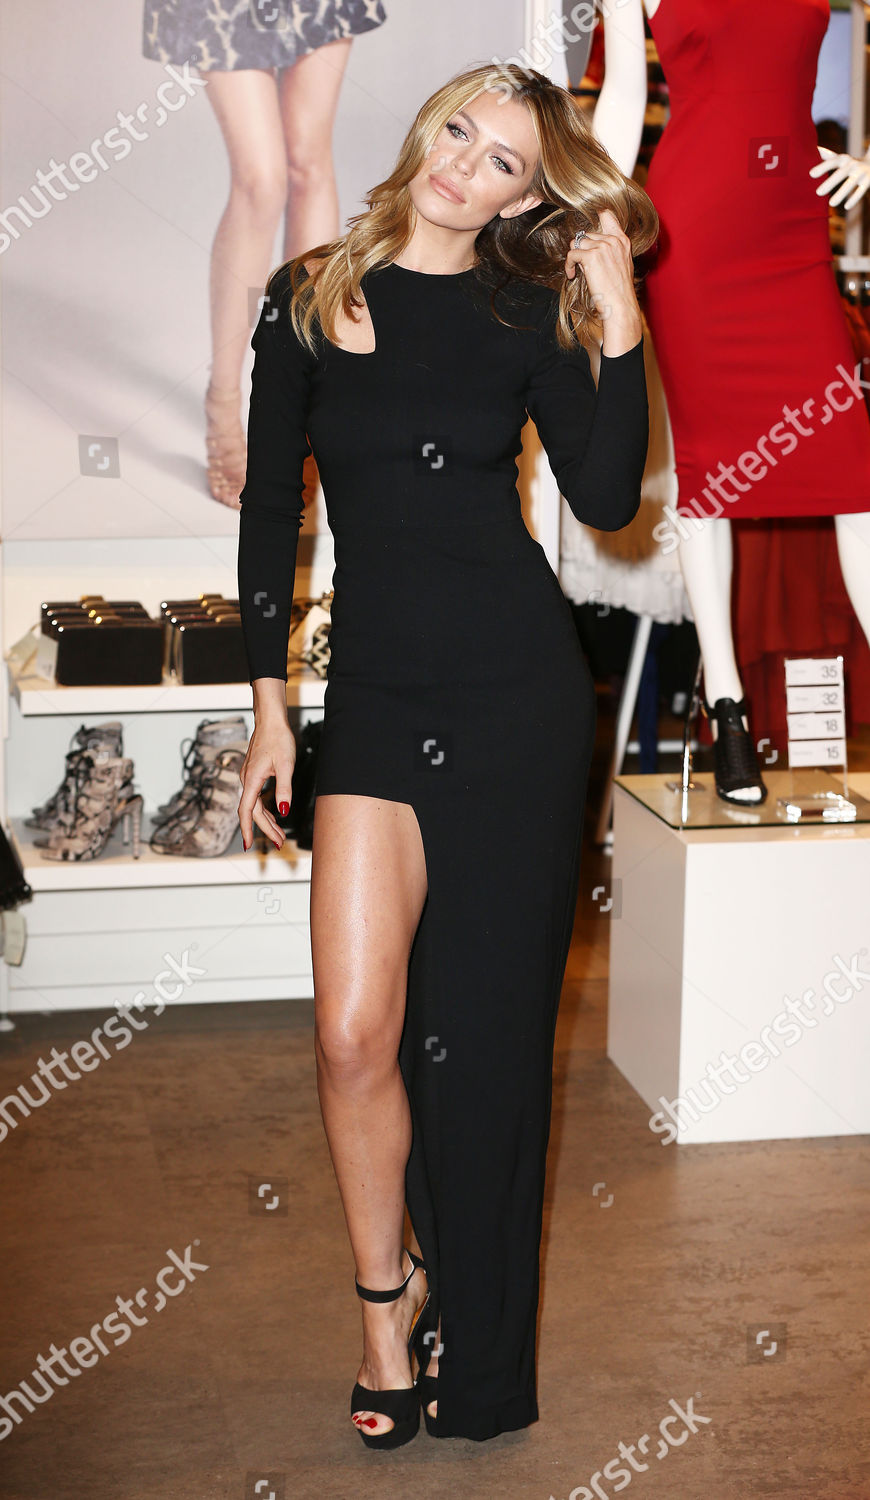 new styles big discount presenting Abigail Clancy Editorial Stock Photo - Stock Image   Shutterstock